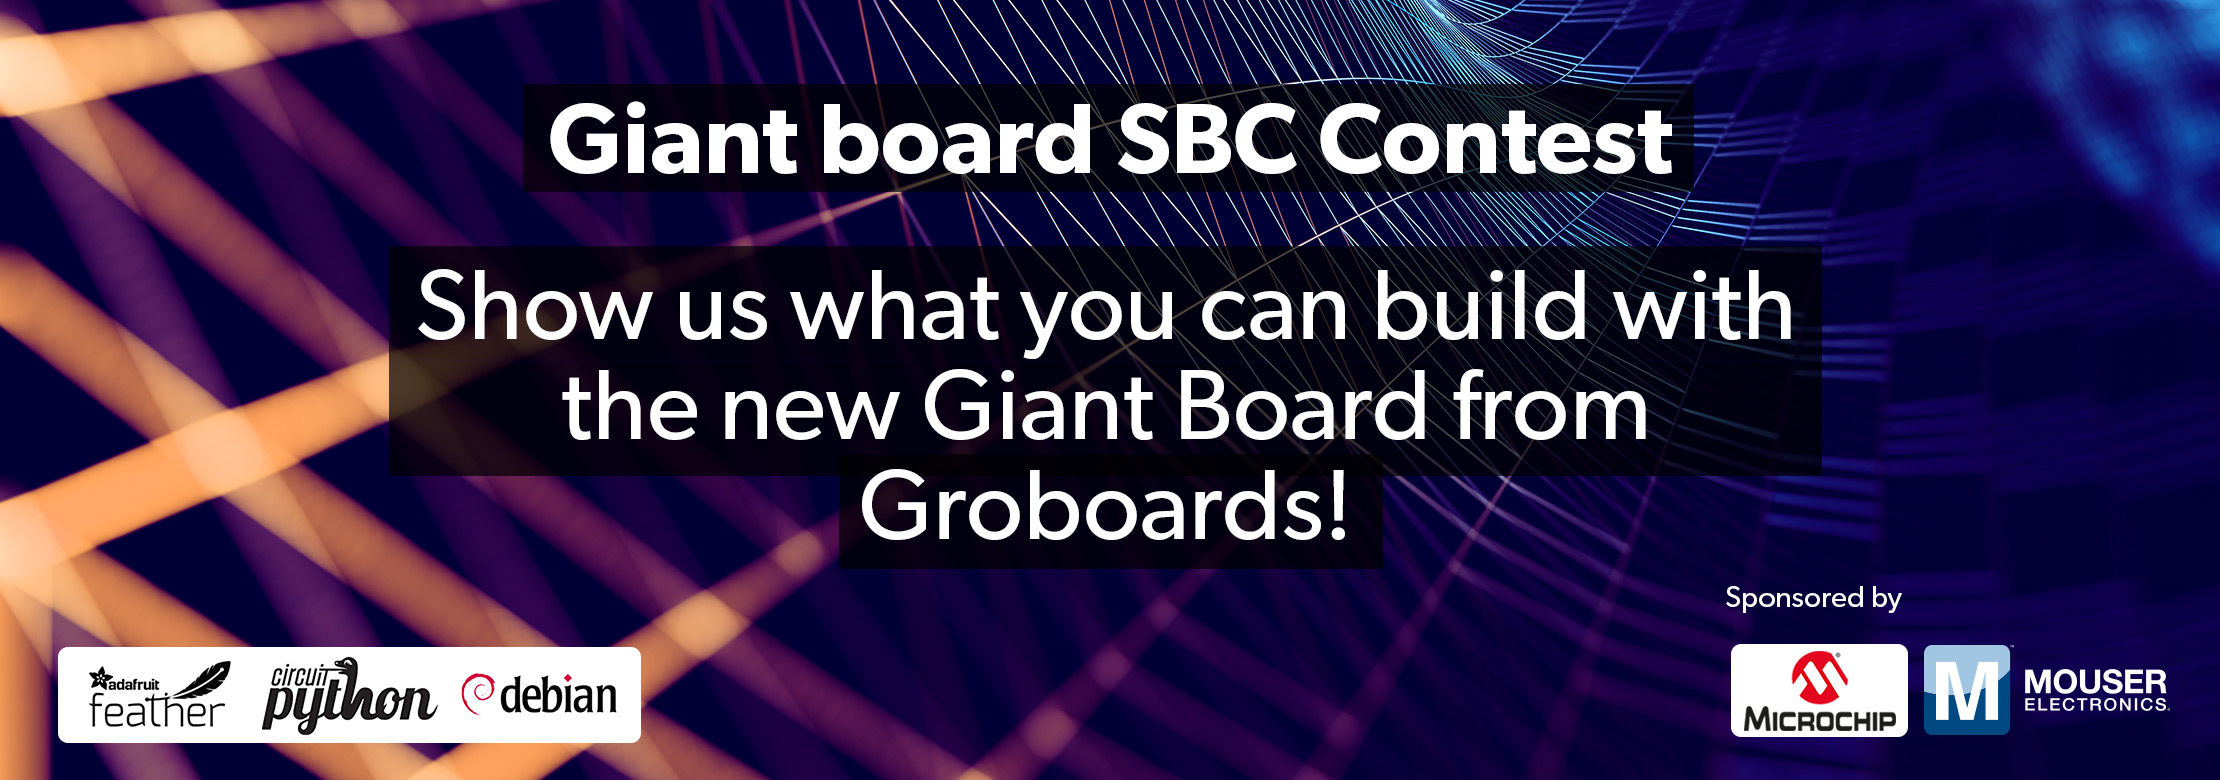 Microchip Giant Board Contest